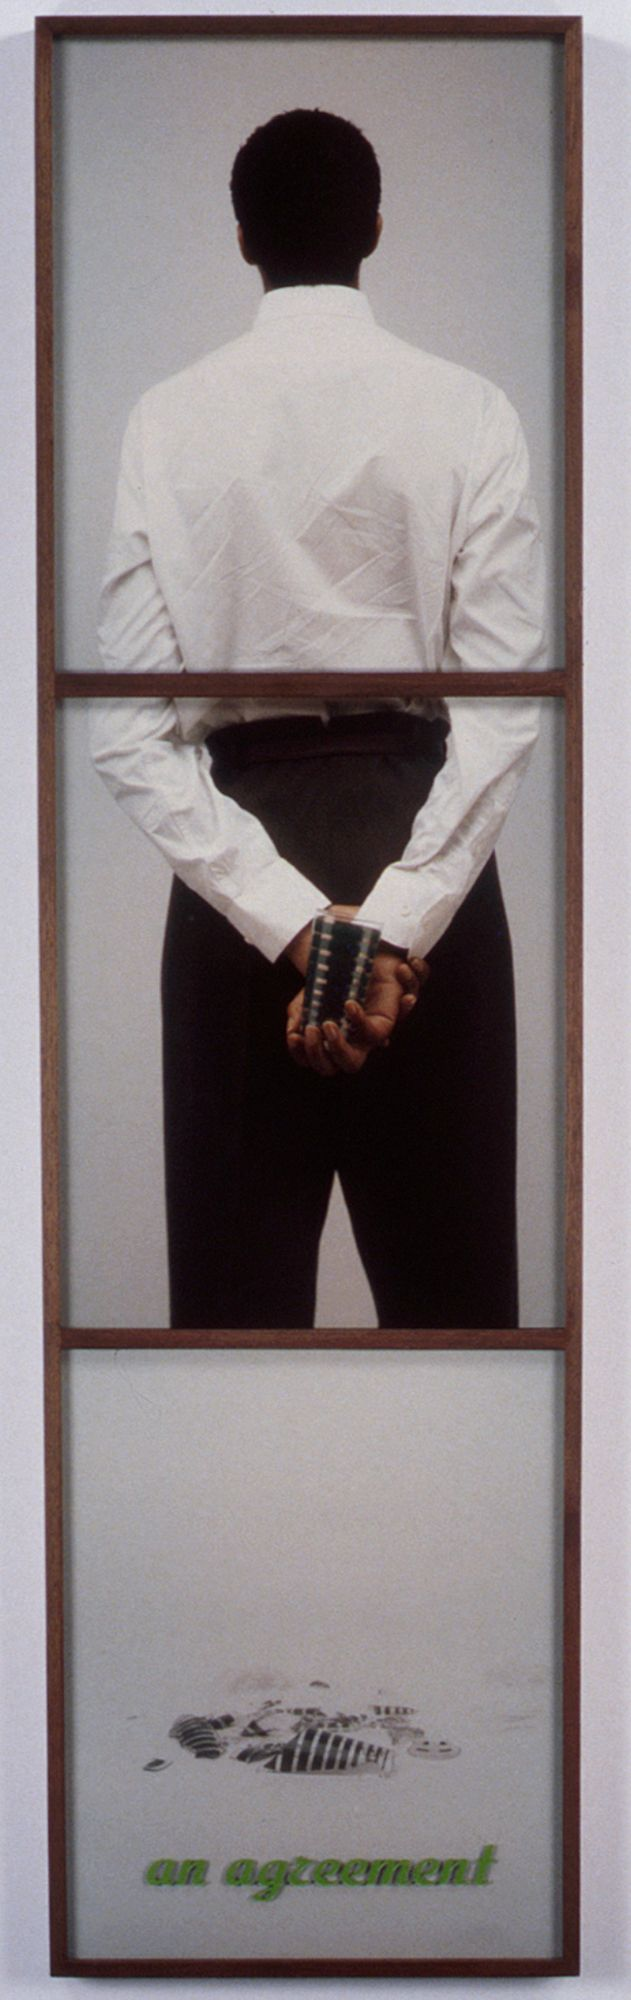 Holding and Breaking, 1992